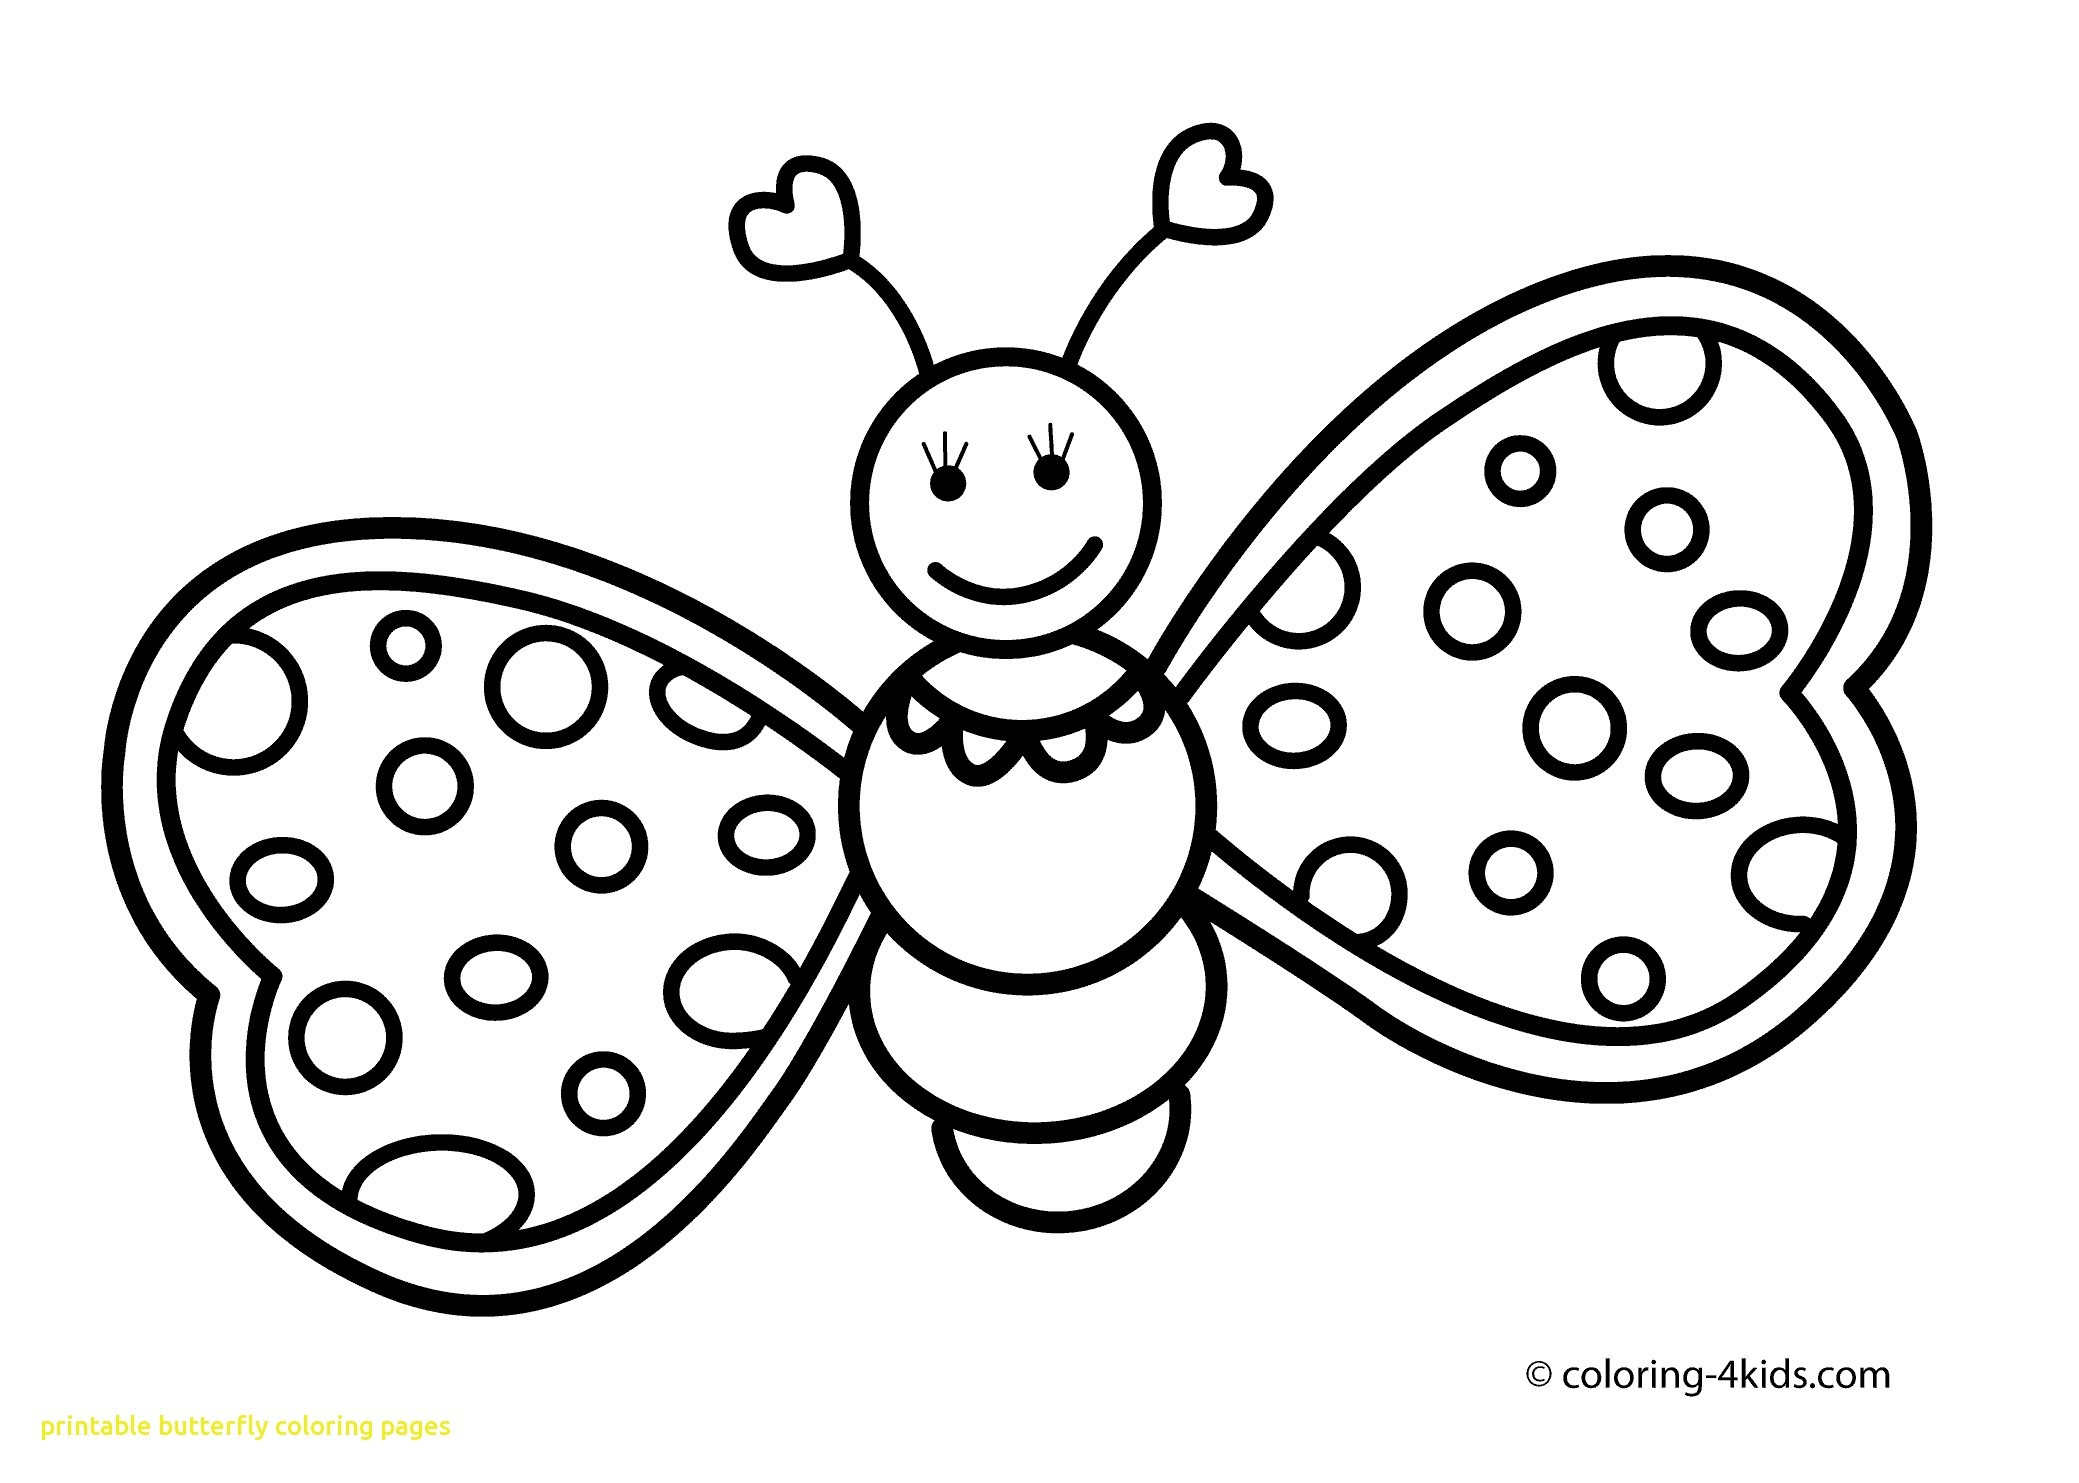 2079x1483 Free Printable Butterfly Coloring Pages Of Butterflies Printables